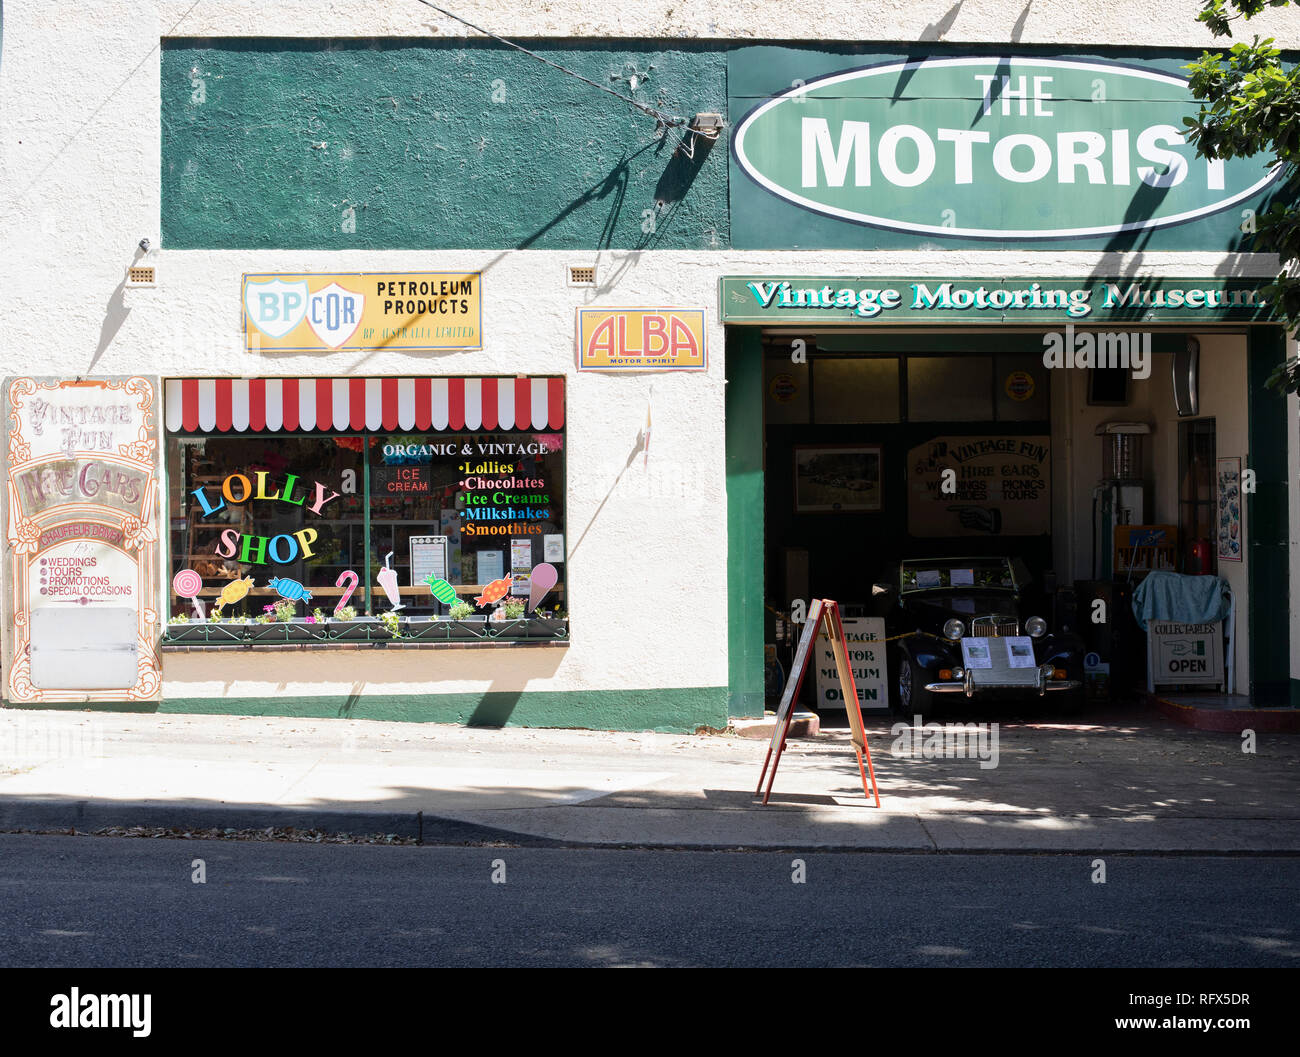 Vintage motorist museum with confectionary store, Australia Stock Photo